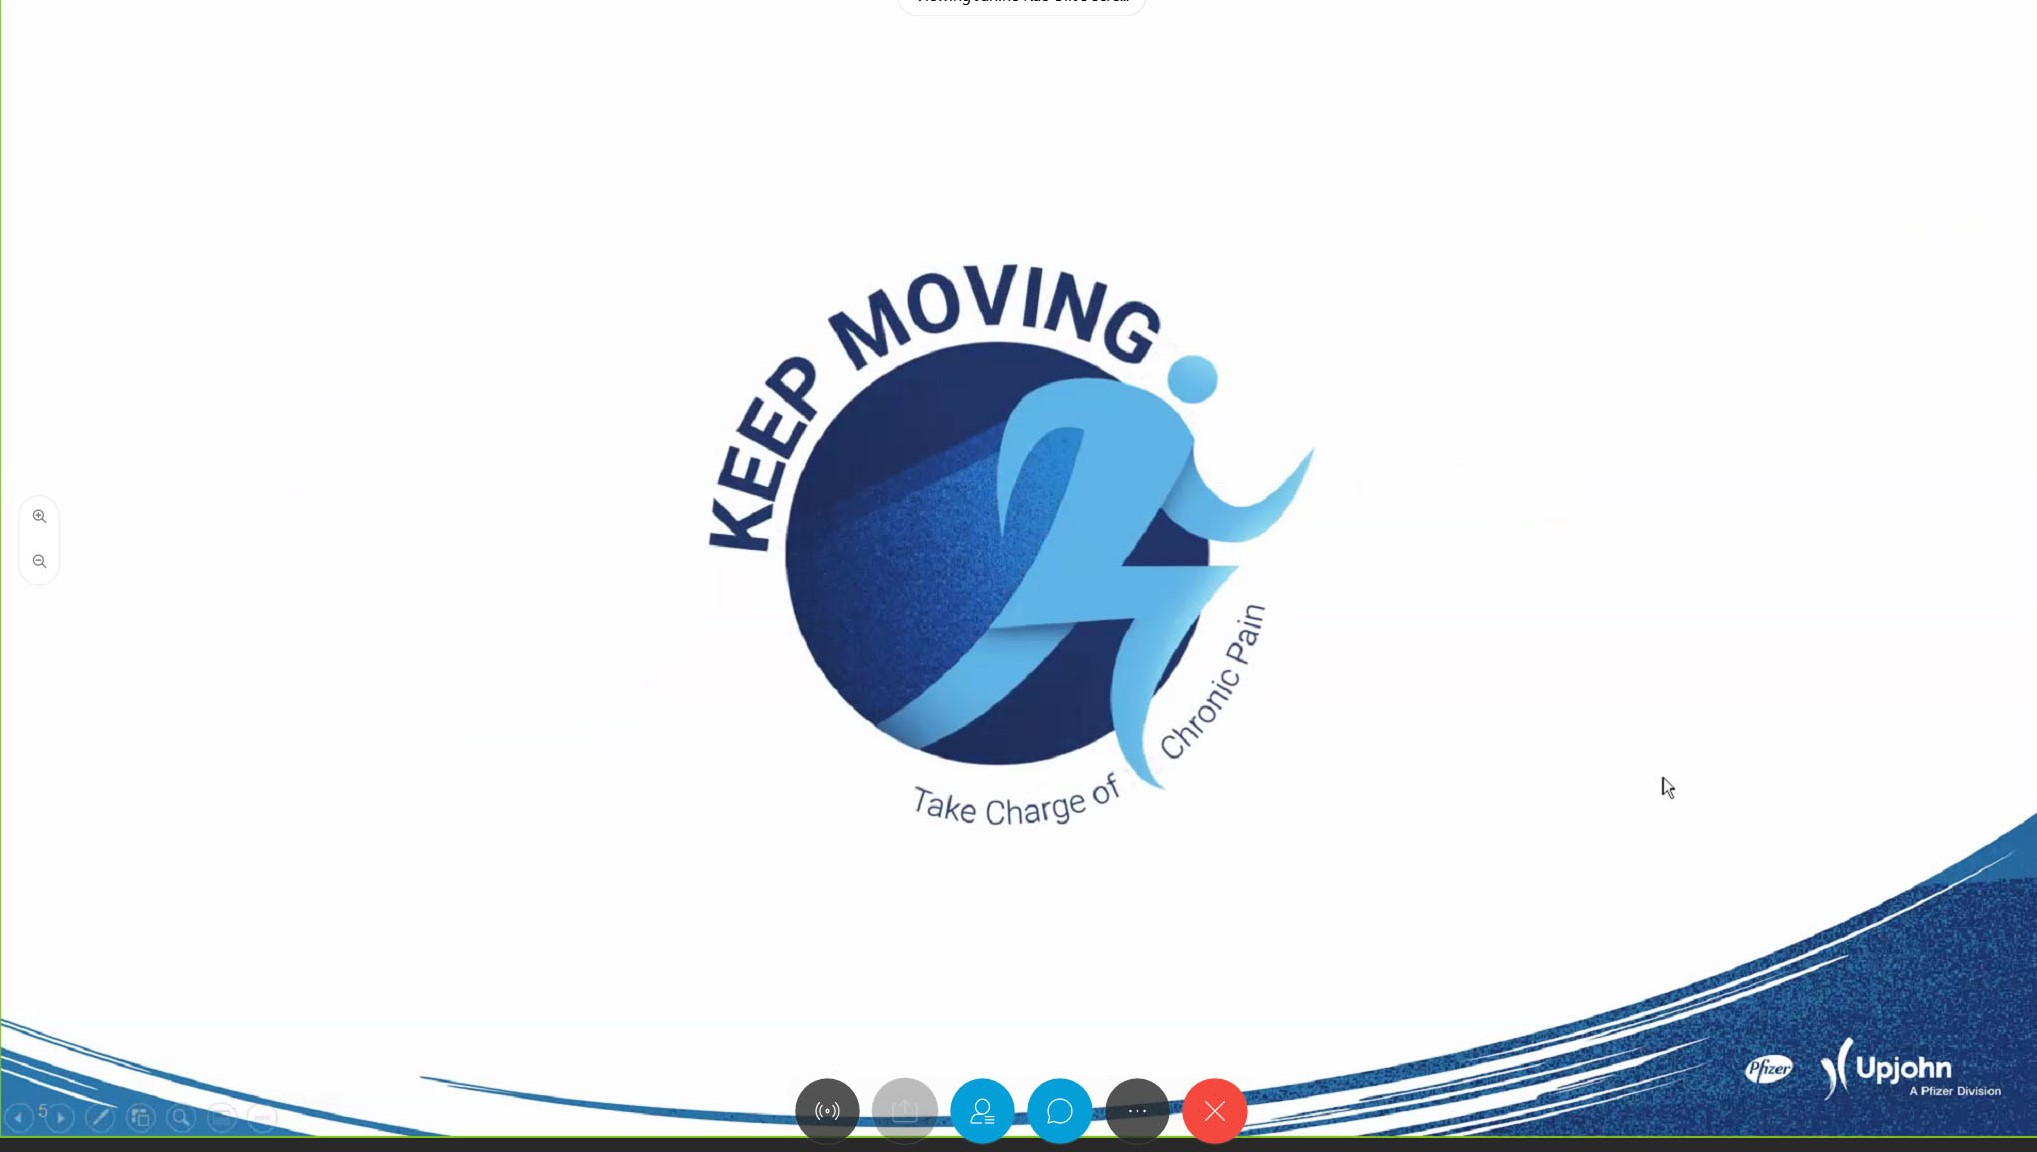 Upjohn launches Keep Moving campaign, urging Pinoys to take charge of their chronic pain